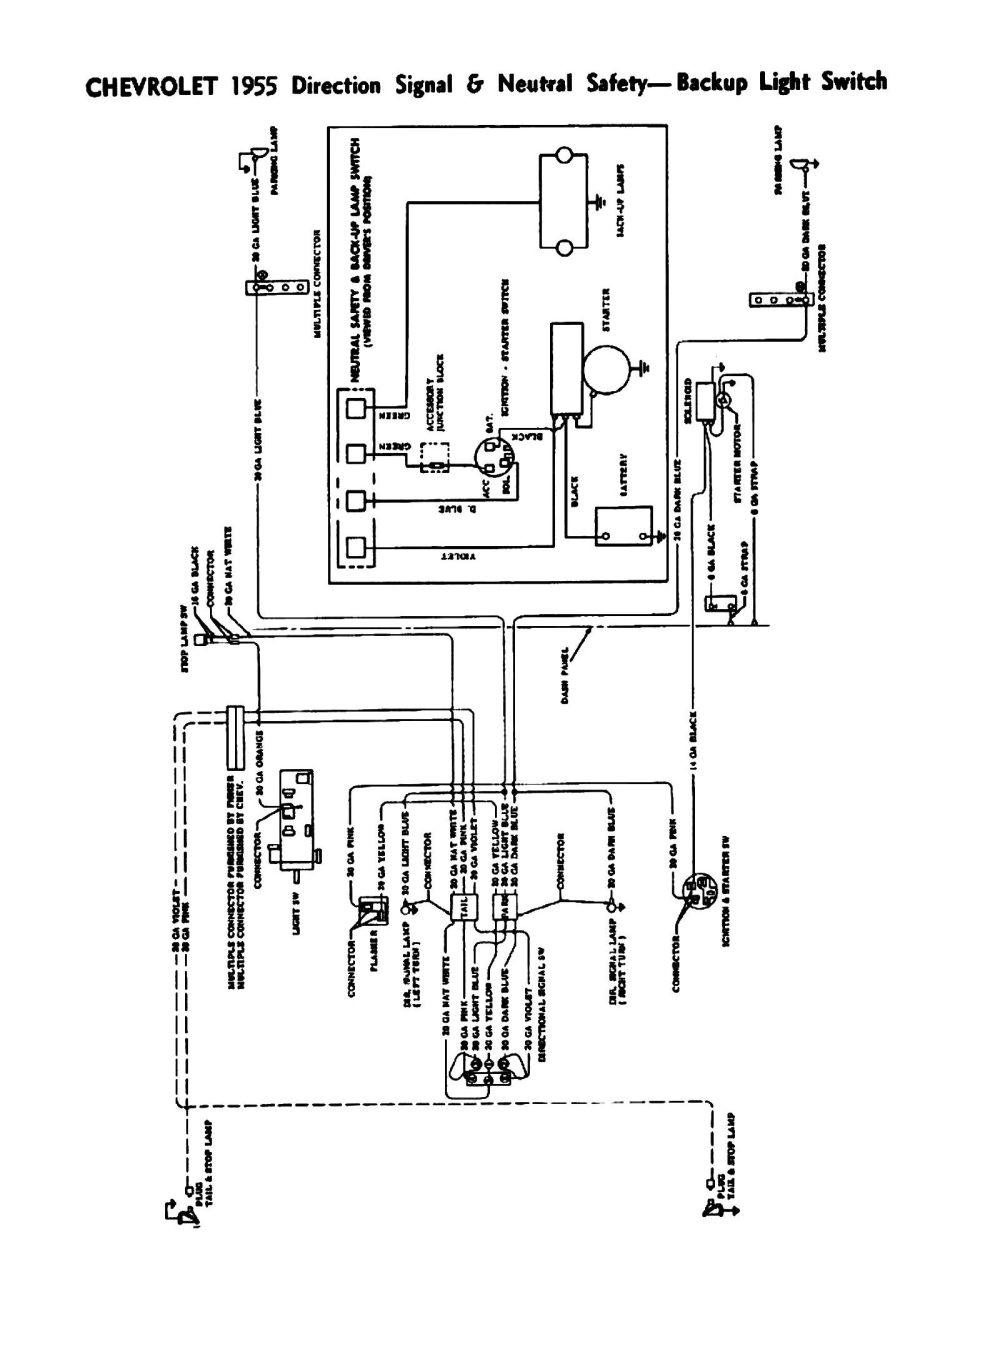 medium resolution of chevrolet ignition wiring diagram wiring diagram third level chevrolet 1969 ignition wiring diagram 1954 chevrolet ignition